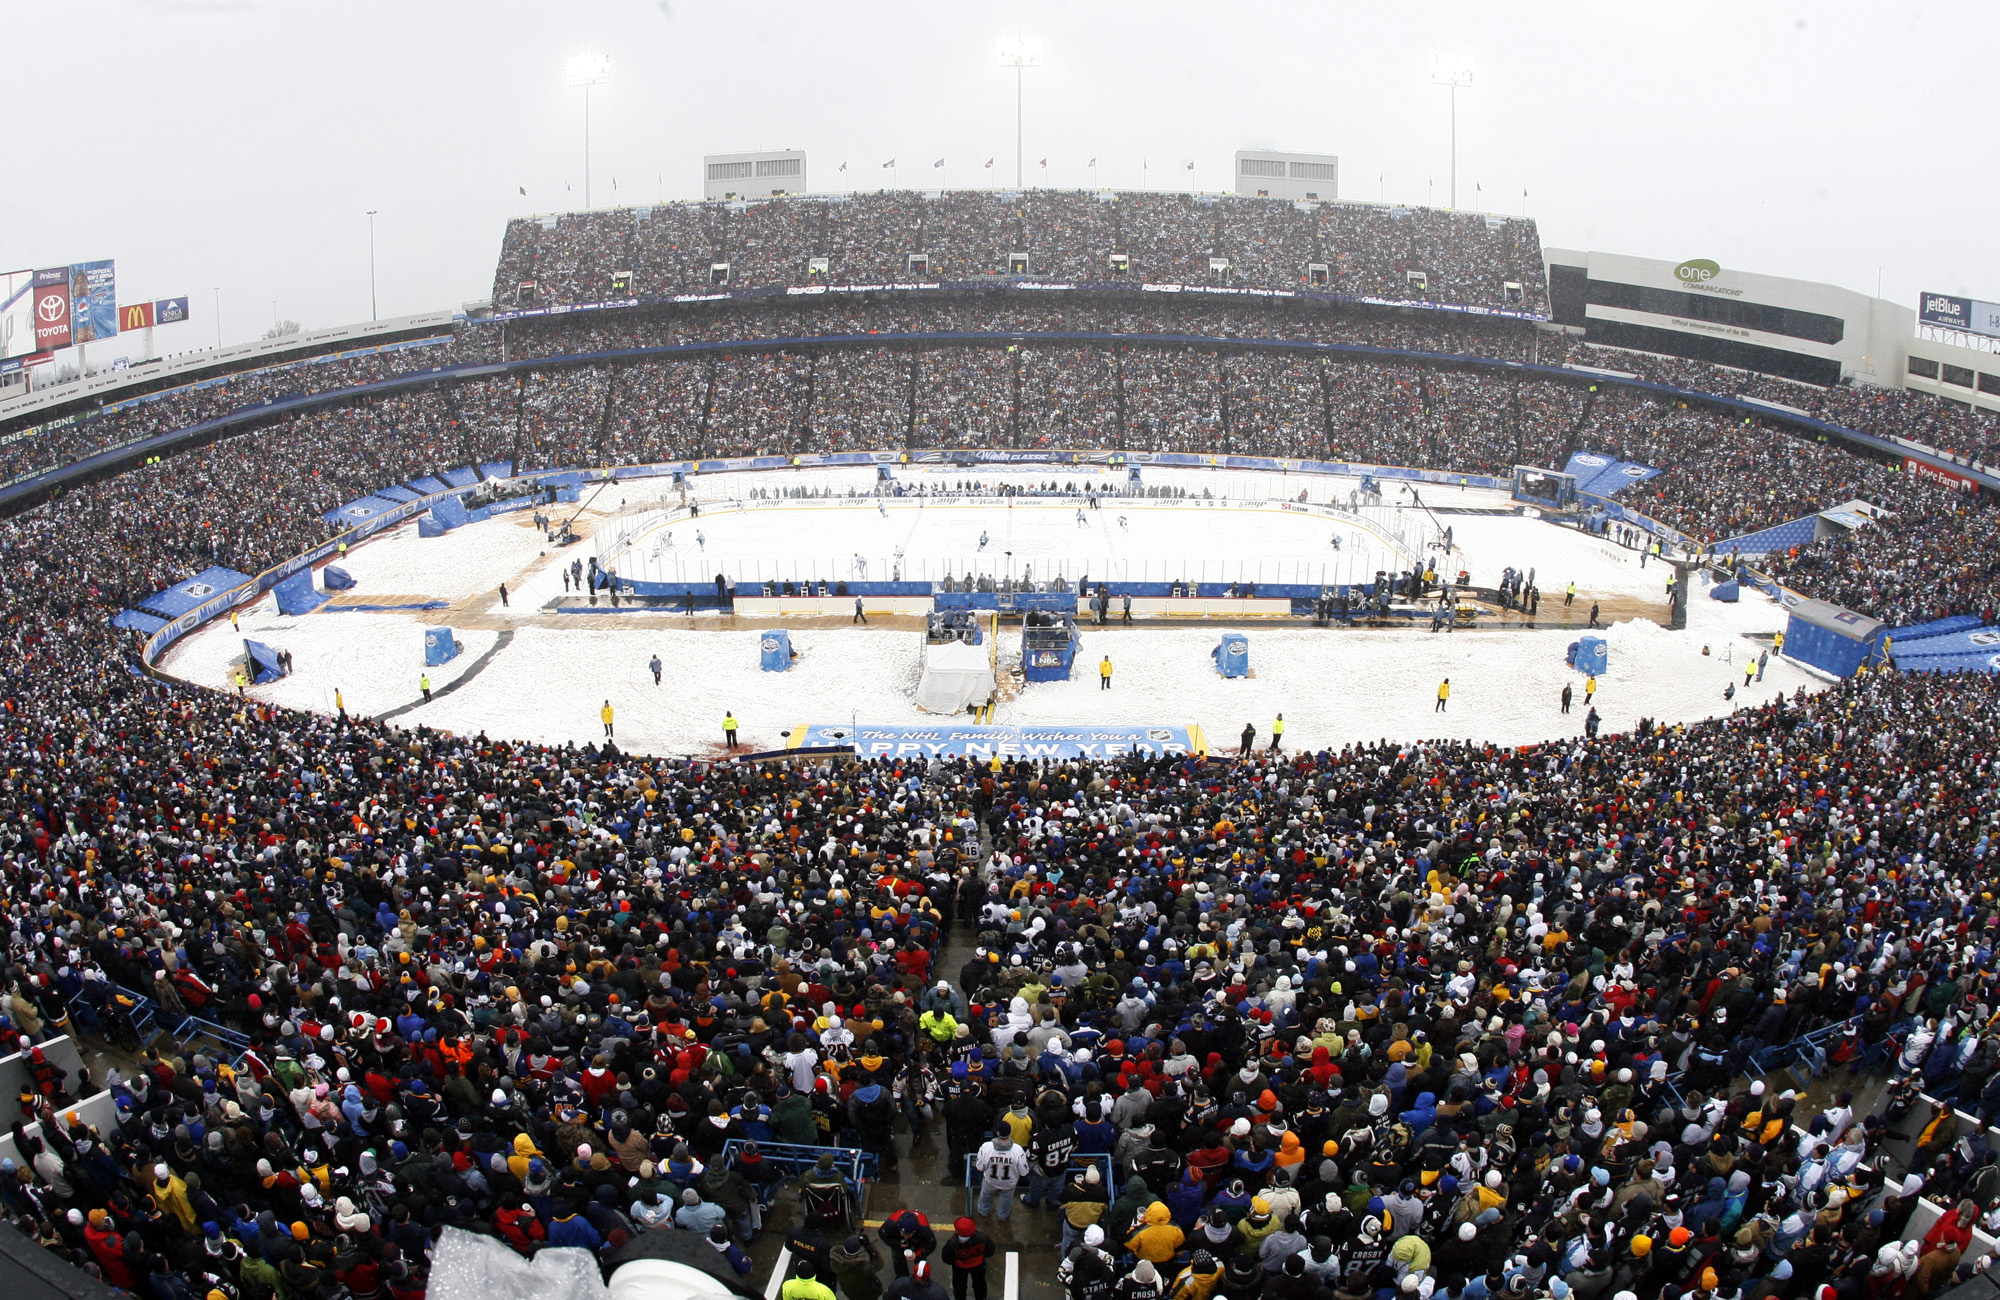 Game time set for World Juniors outdoor hockey game Dec. 29 at New Era Field